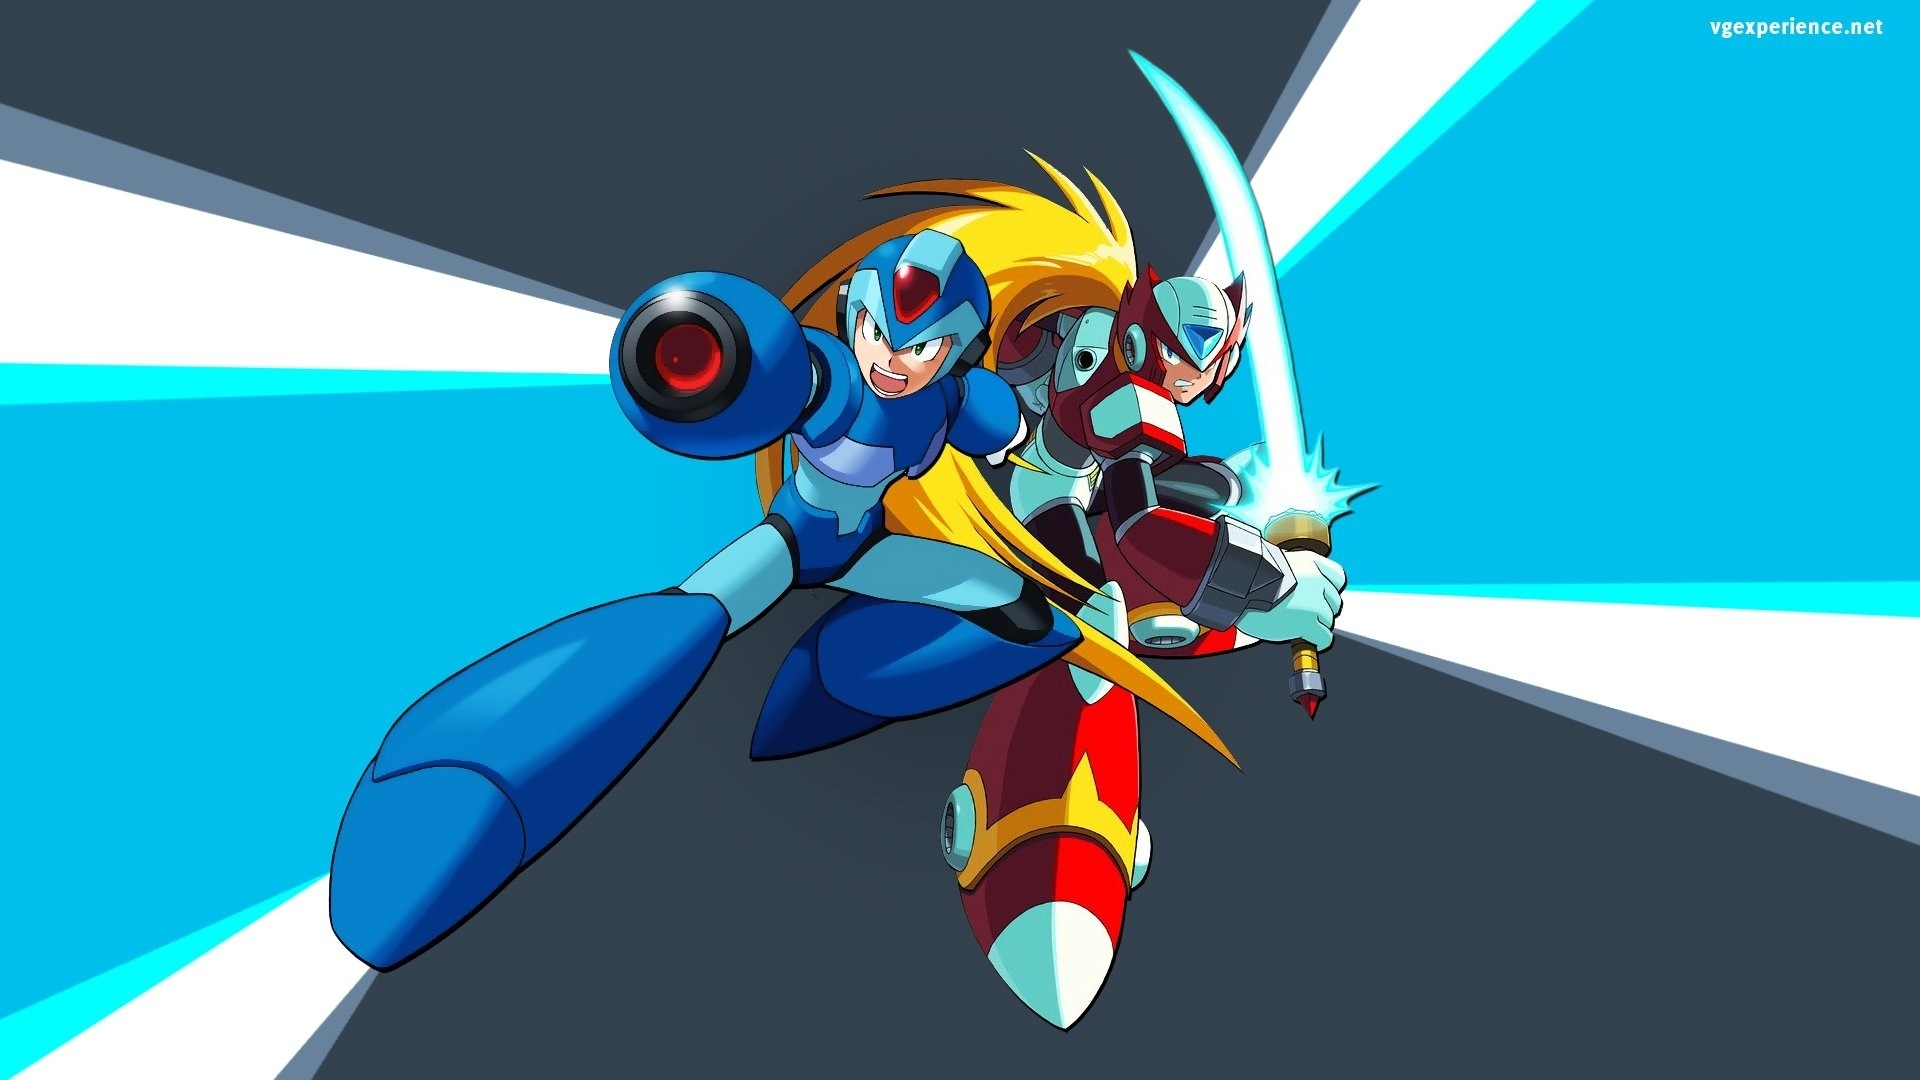 10 Top Mega Man X Wallpaper FULL HD 1080p For PC Background